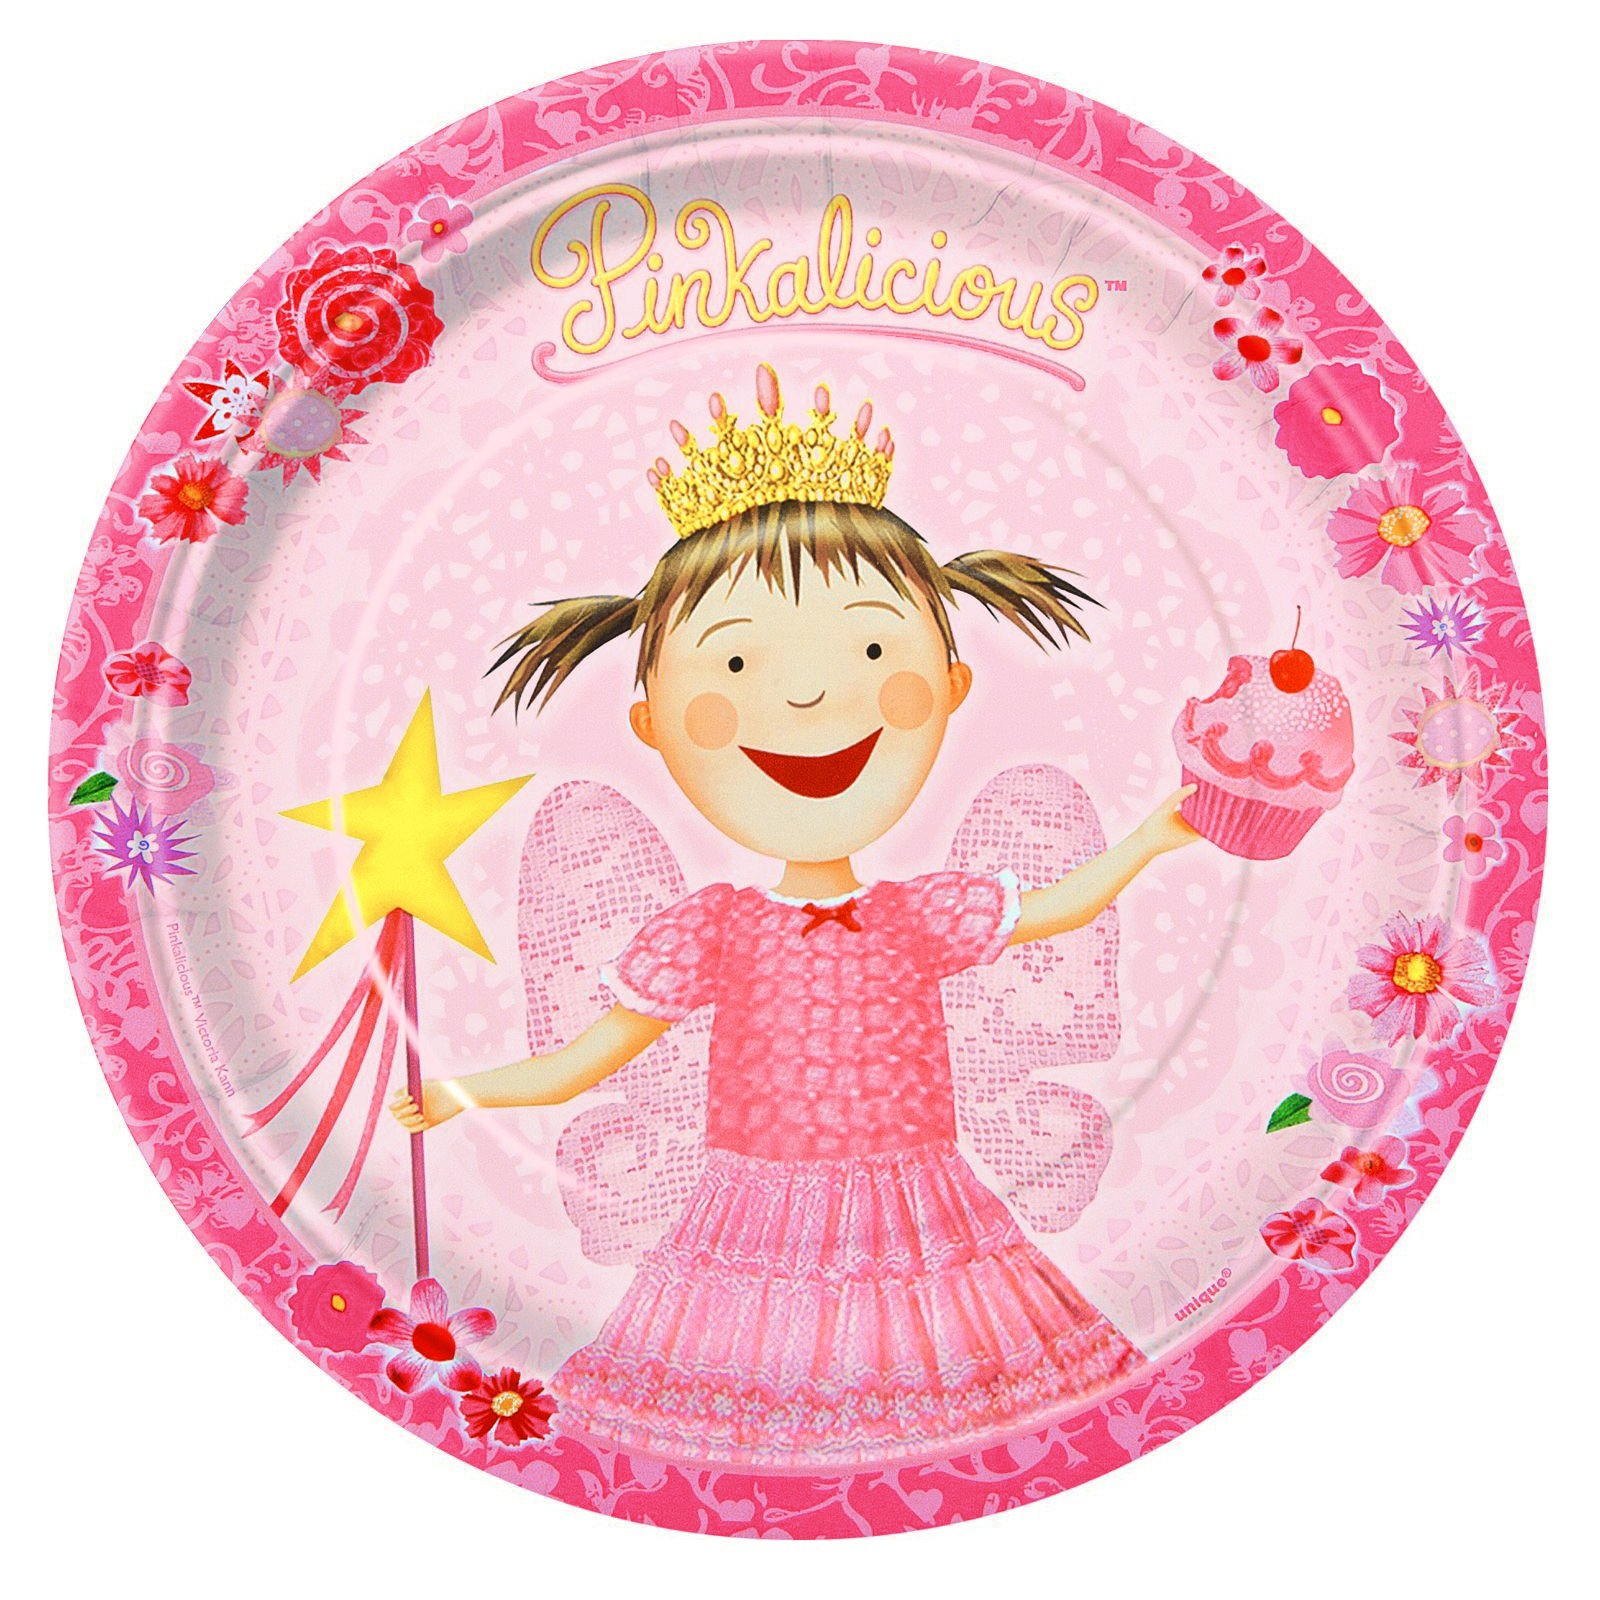 Pinkalicious Dessert Plates (8 count)